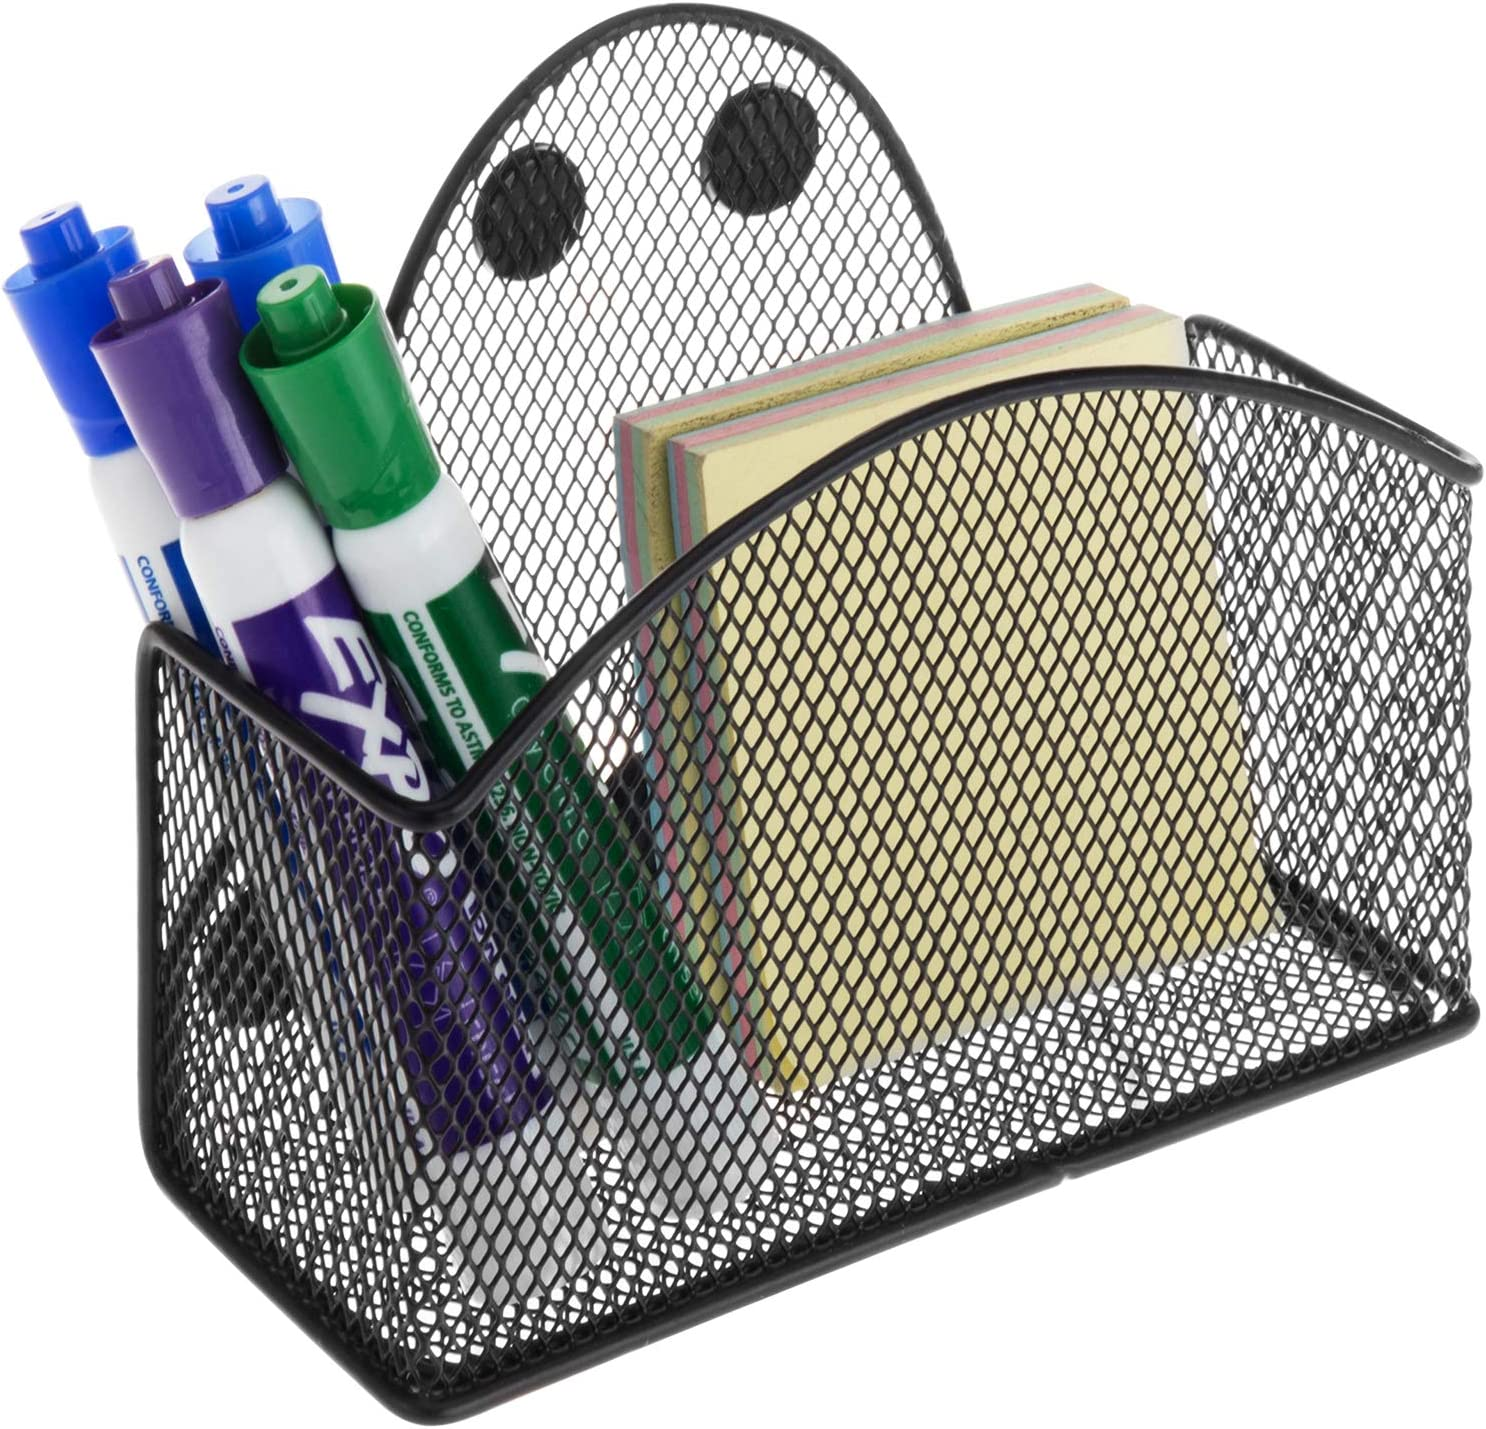 MyGift Magnetic Black Metal Mesh Wall Storage Basket for Office Supplies, Dry Erase Markers, Erasers and Spray Bottles